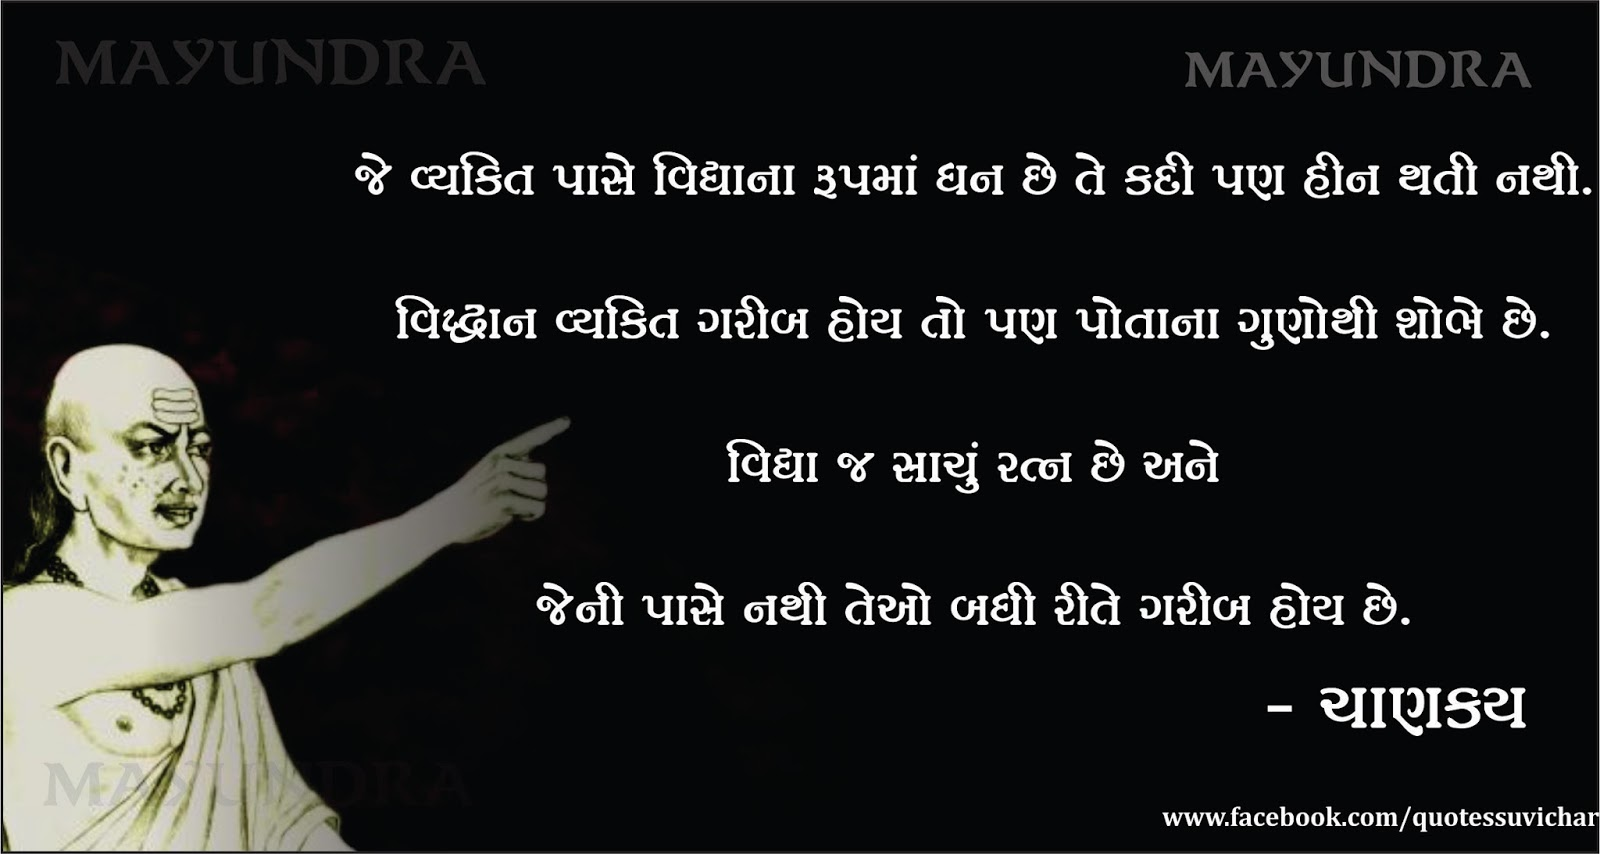 Study Chankya Gujarati Quotes Quotes India Quotes Health